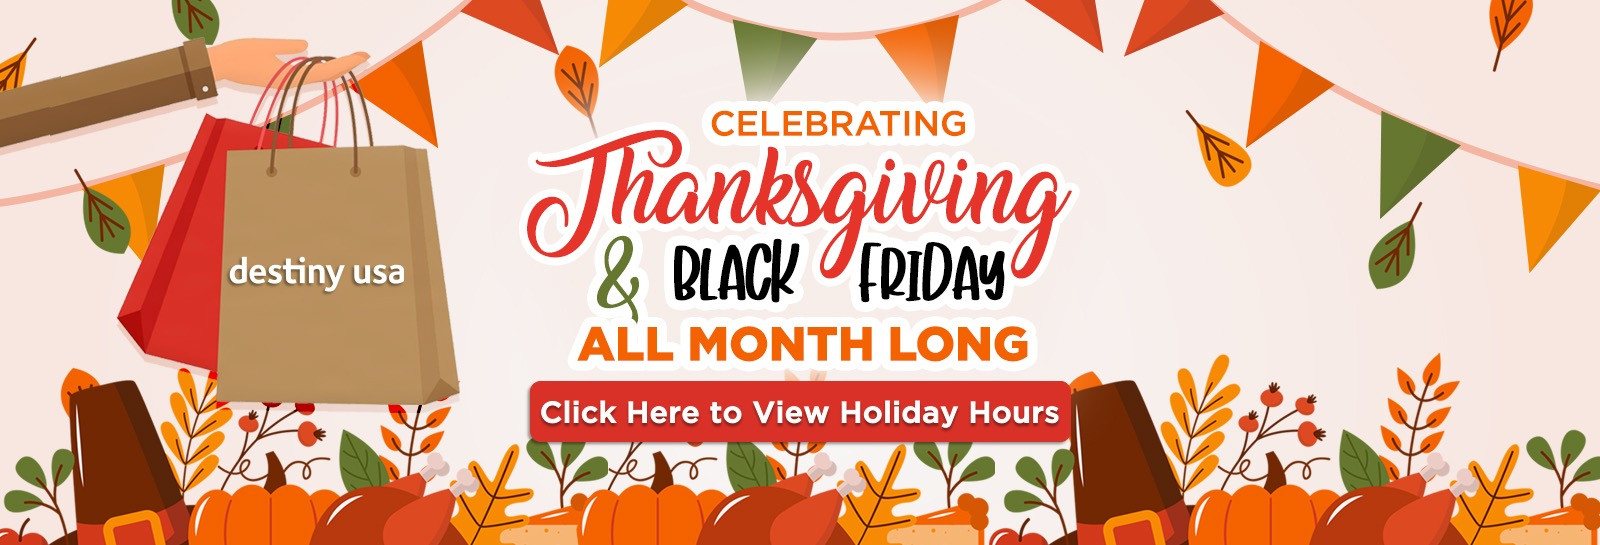 thanksgiving bf web slider